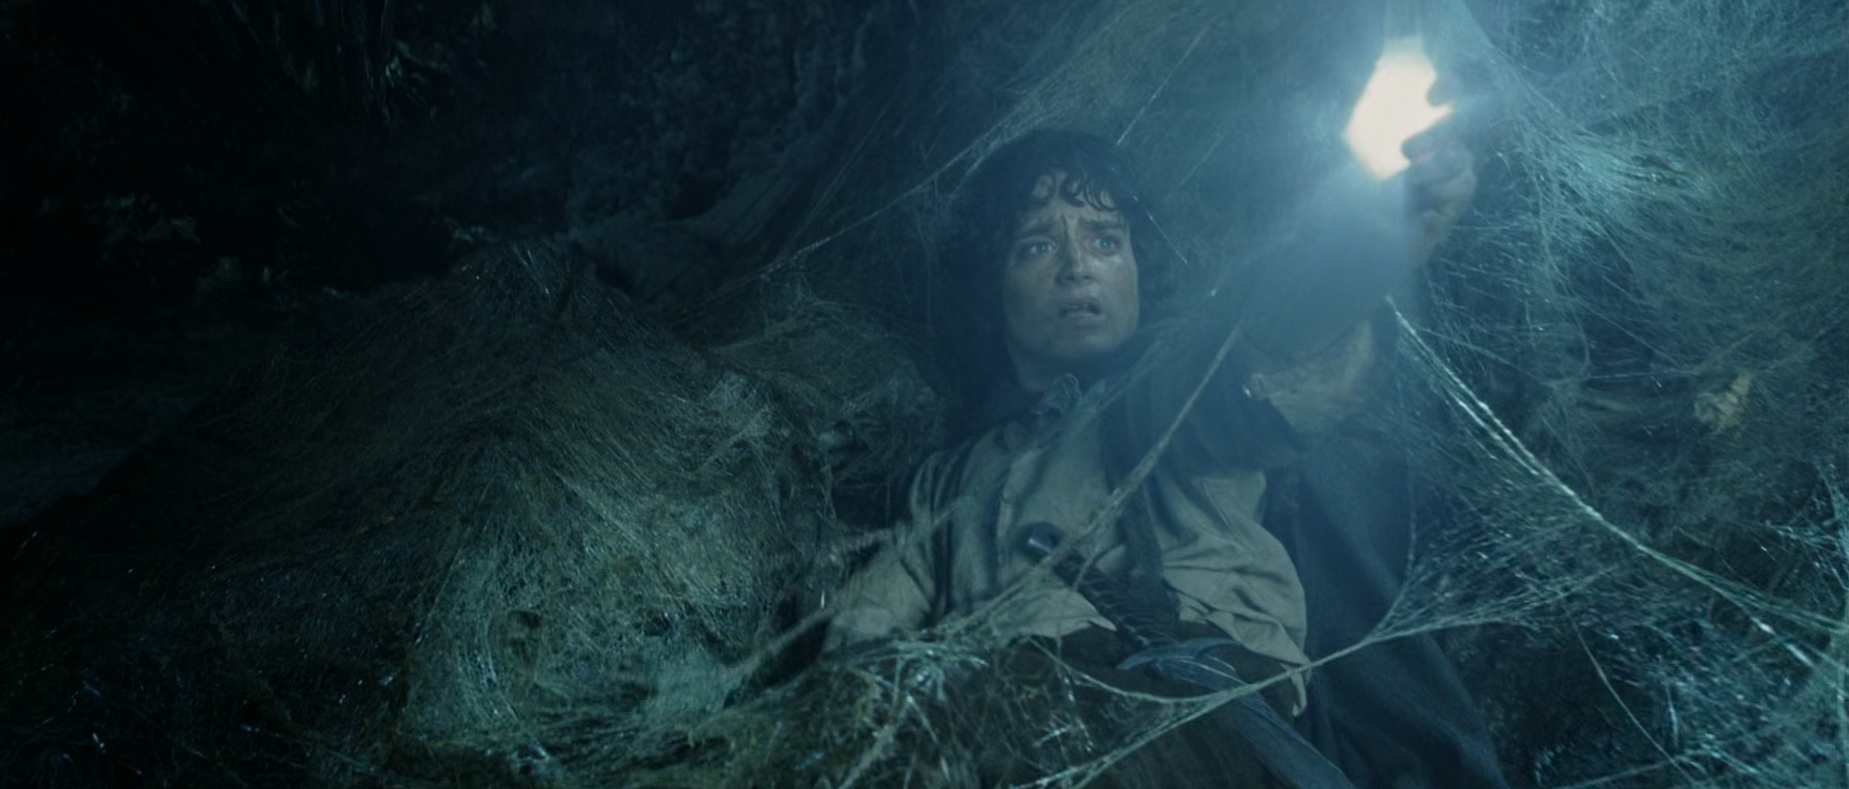 Frodo from shining a bright light in Shelob's tunnel